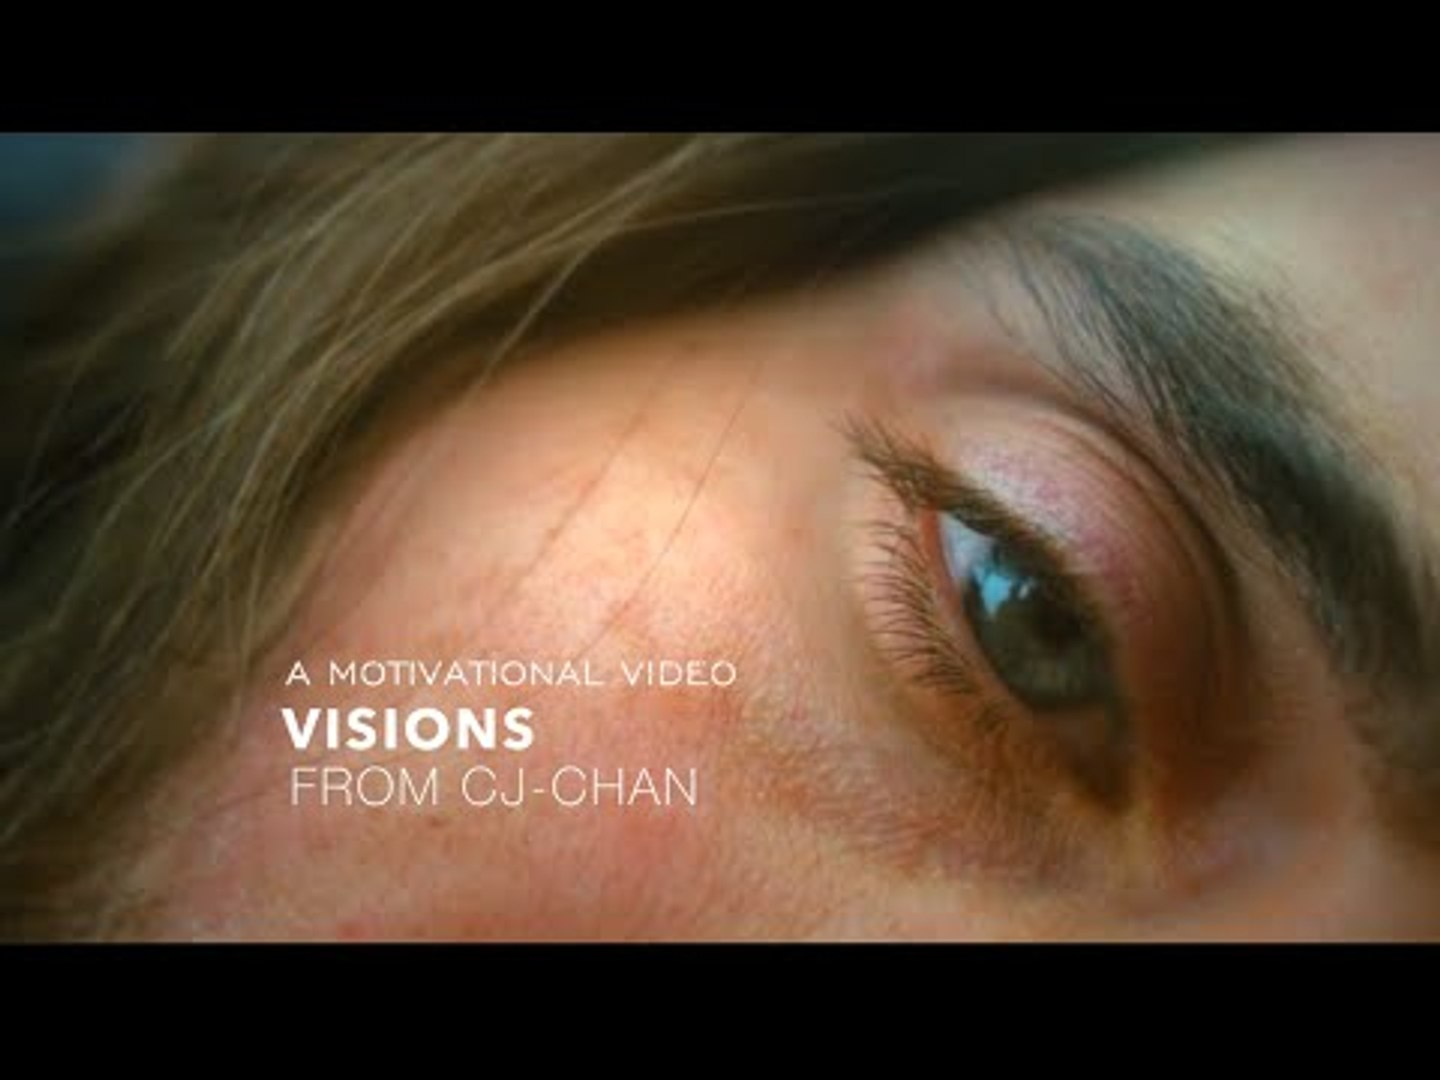 Visions - Motivational Video